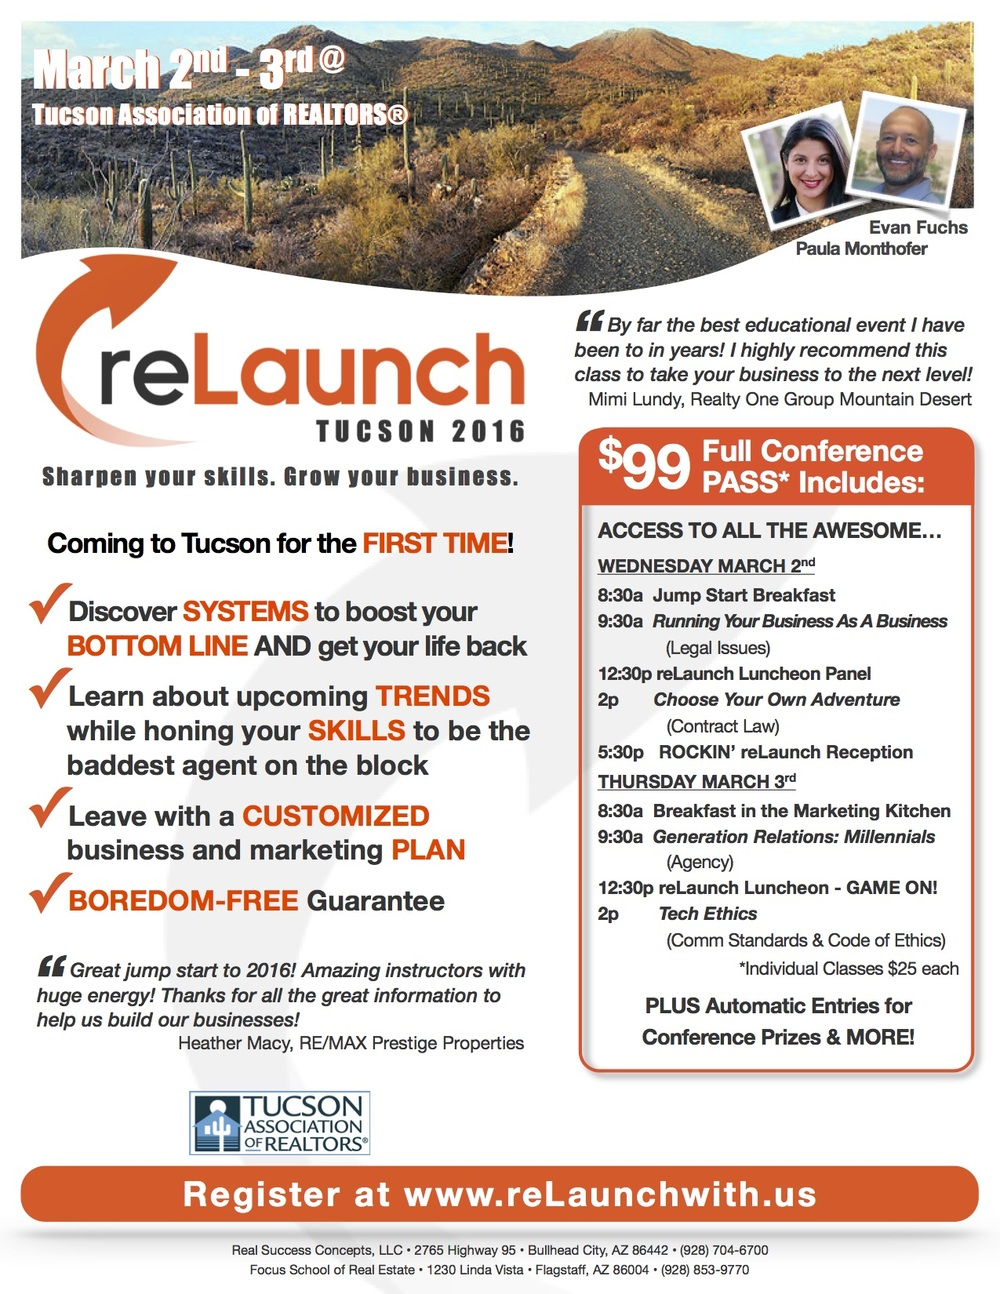 relaunch_tucson_2016_flyer.jpg